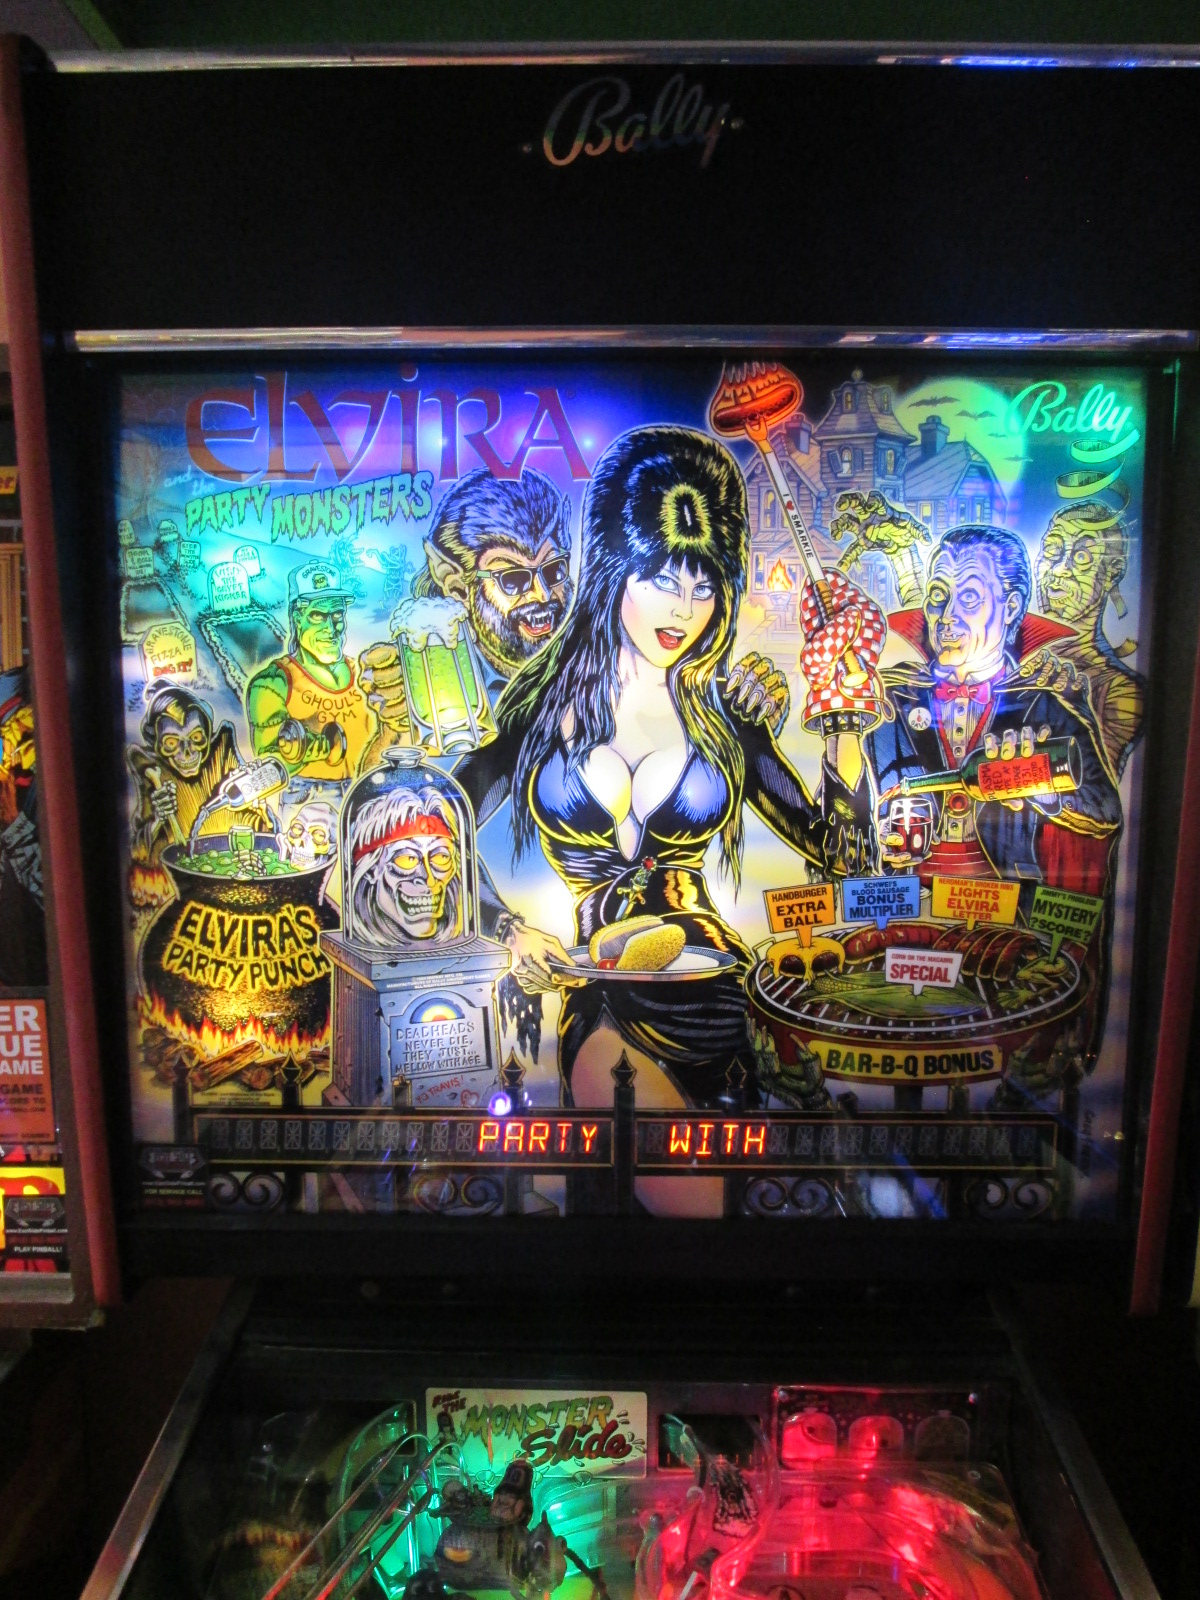 ed1475: Elvira and the Party Monsters (Pinball: 3 Balls) 1,473,270 points on 2016-09-18 15:02:59